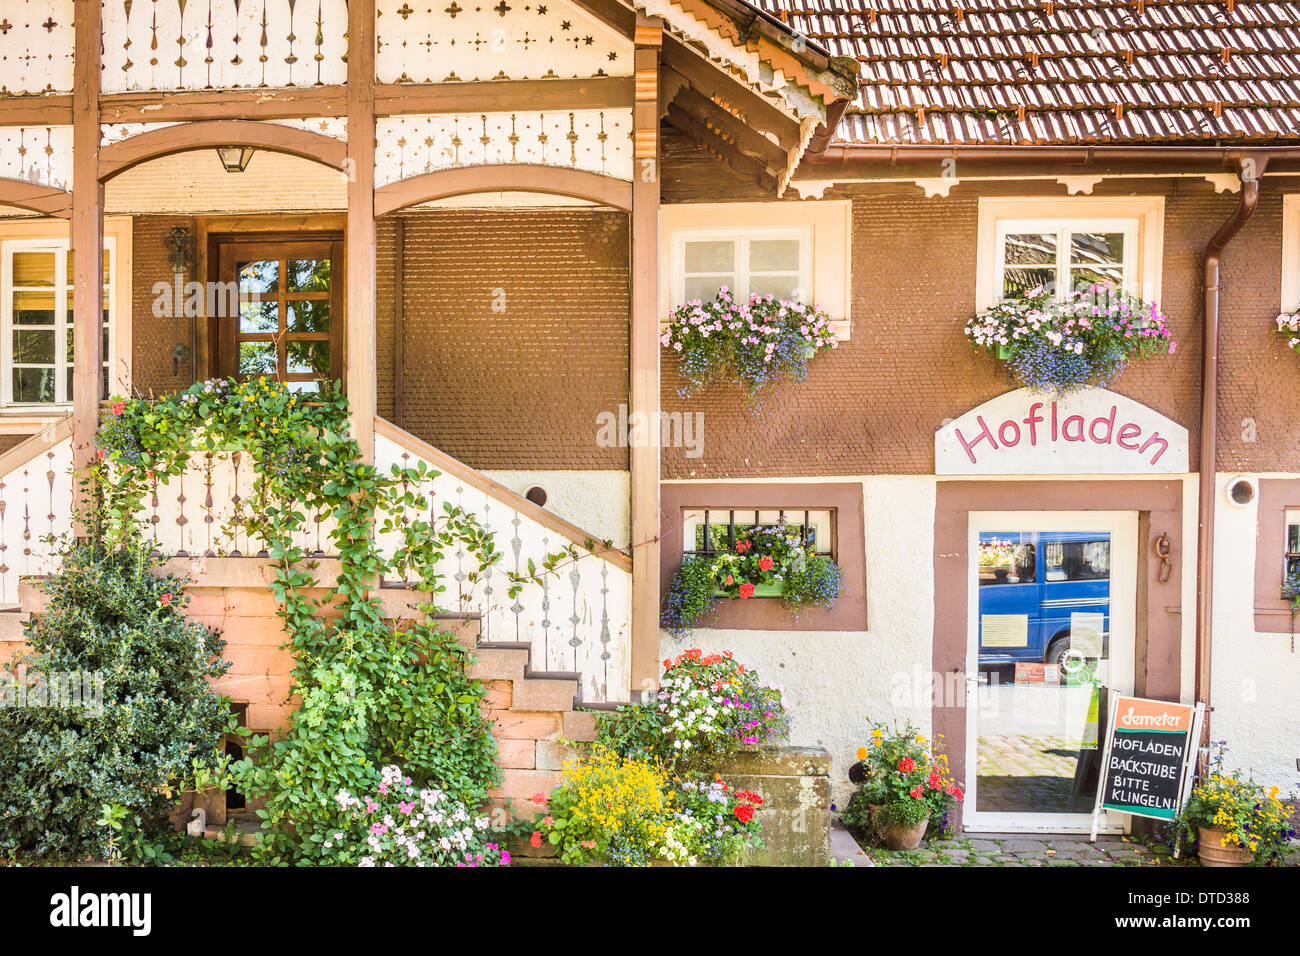 farm shop in the black forest region offering organic products, black forest, baden-wuerttemberg, germany Stock Photo